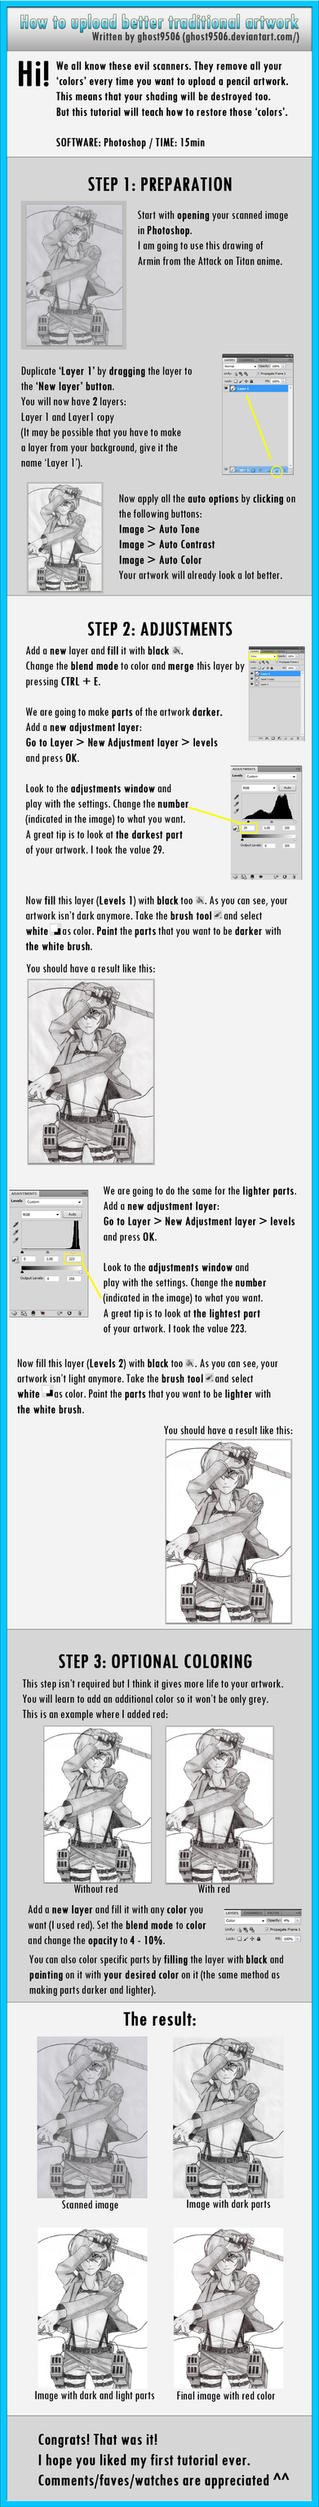 TUTORIAL: Uploading better traditional artwork! by CaptainGhostly